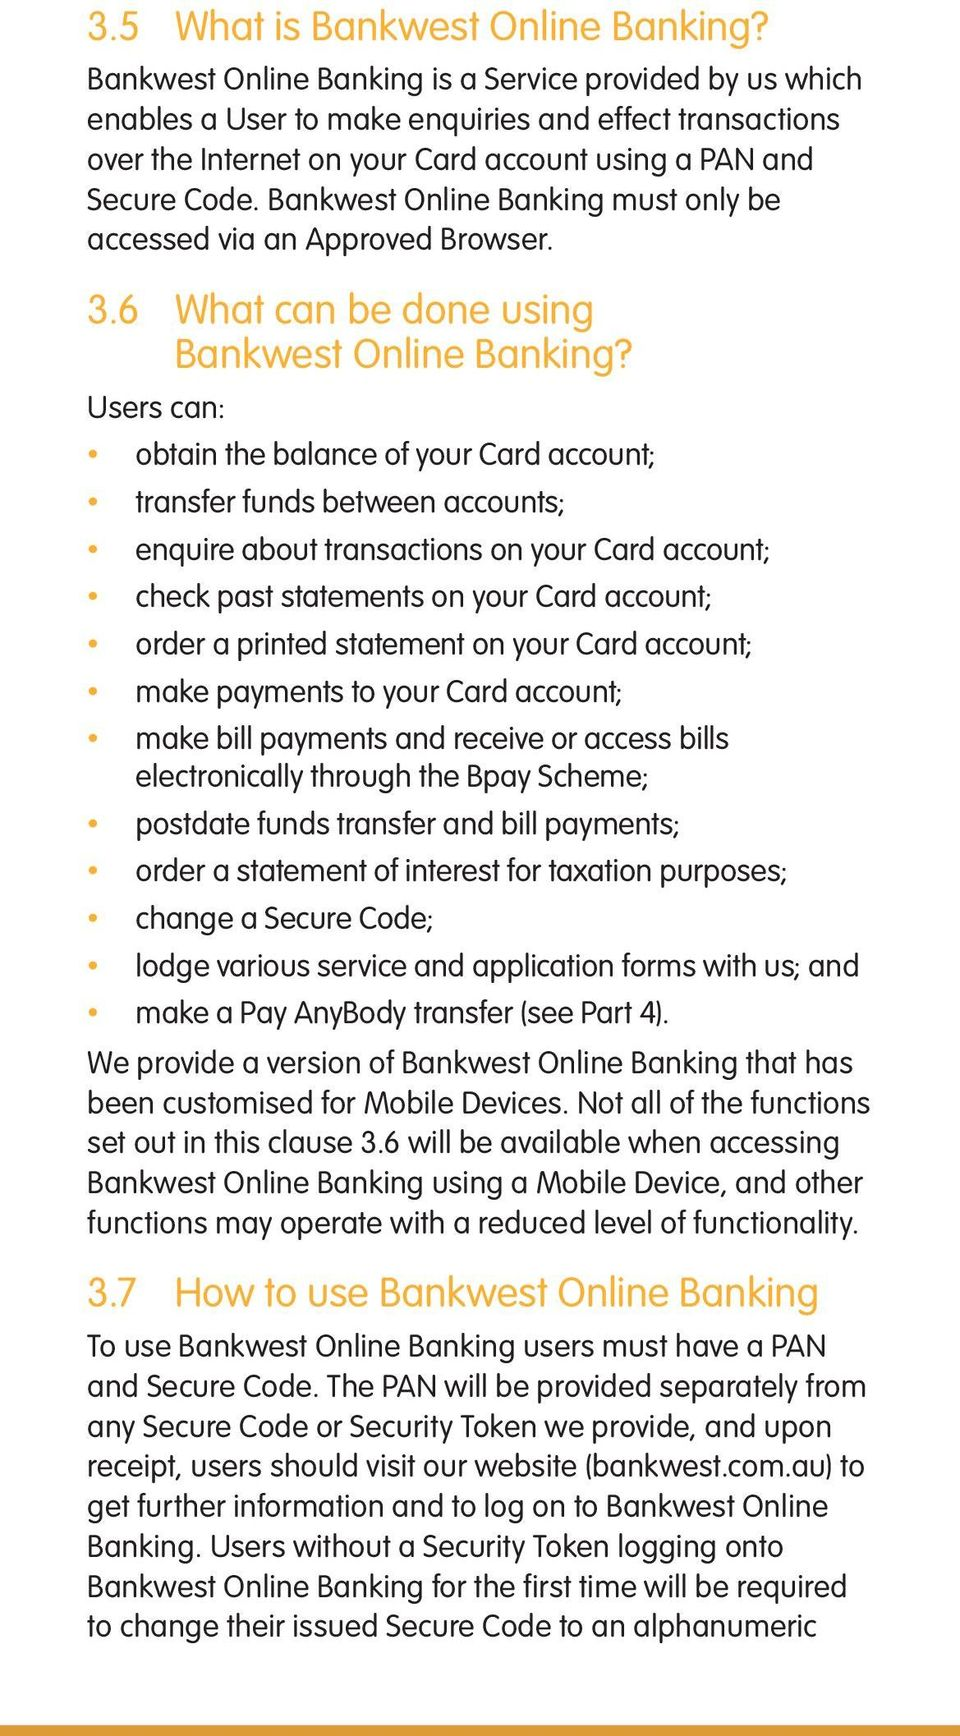 Bankwest Online Banking must only be accessed via an Approved Browser. 3.6 What can be done using Bankwest Online Banking?